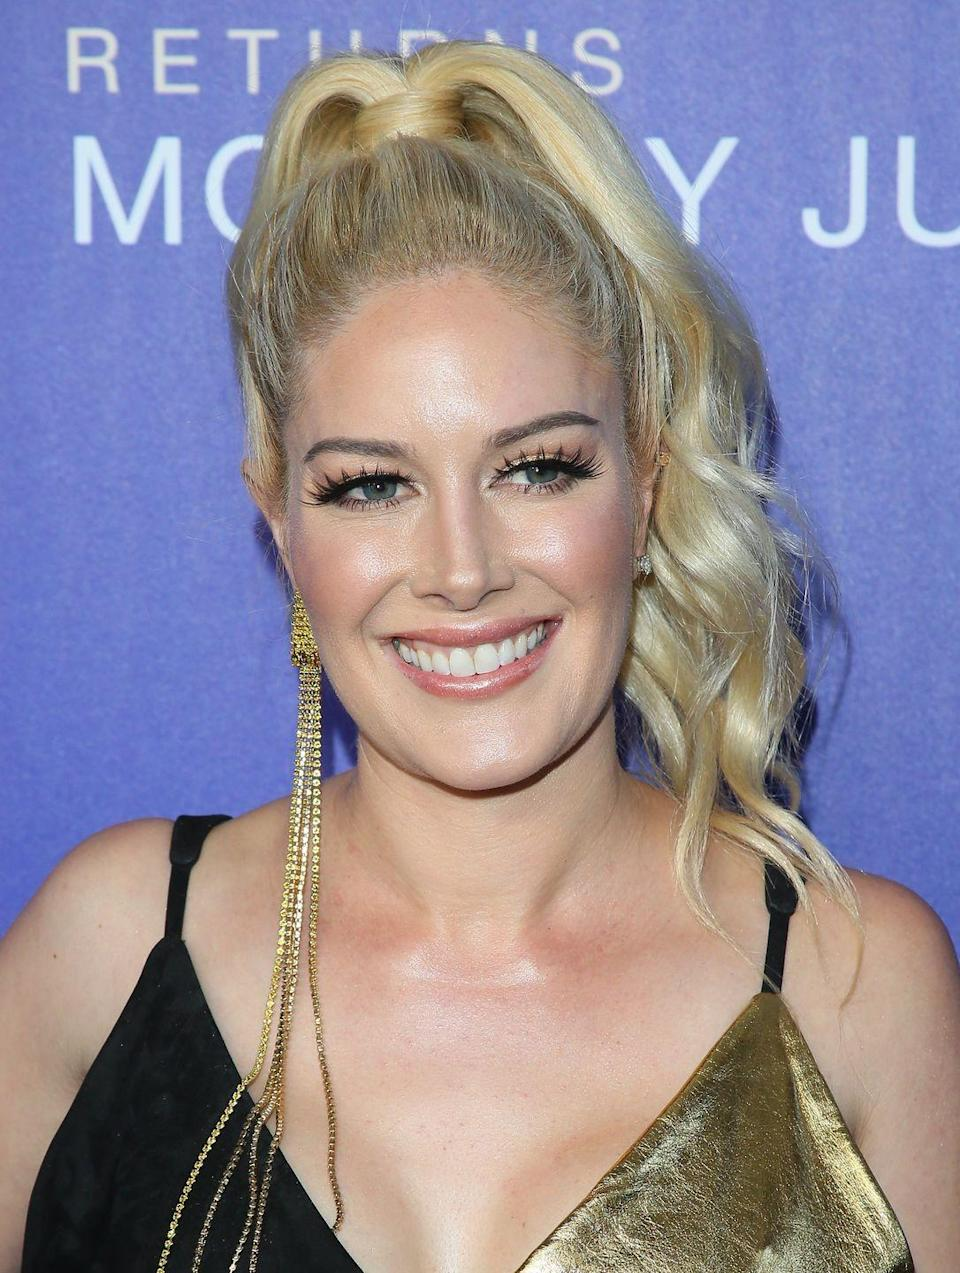 """<p>The Hills star Heidi Montag famously underwent 10 cosmetic surgeries in one day in 2010. In hindsight, the TV star regretted making so many changes to her body. """"I was definitely way in over my head. I'm glad it worked out and you can't really reverse time,"""" <a href=""""https://www.today.com/news/heidi-montag-her-extreme-plastic-surgery-i-would-never-do-1C6553133"""" rel=""""nofollow noopener"""" target=""""_blank"""" data-ylk=""""slk:she said"""" class=""""link rapid-noclick-resp"""">she said</a>. 'I kind of wanted a few enhancements and then it kind of got out of hand. I wasn't told really the repercussions and what would happen, emotionally and psychically, and the pain I would be in. I was kind of in shock.'</p>"""